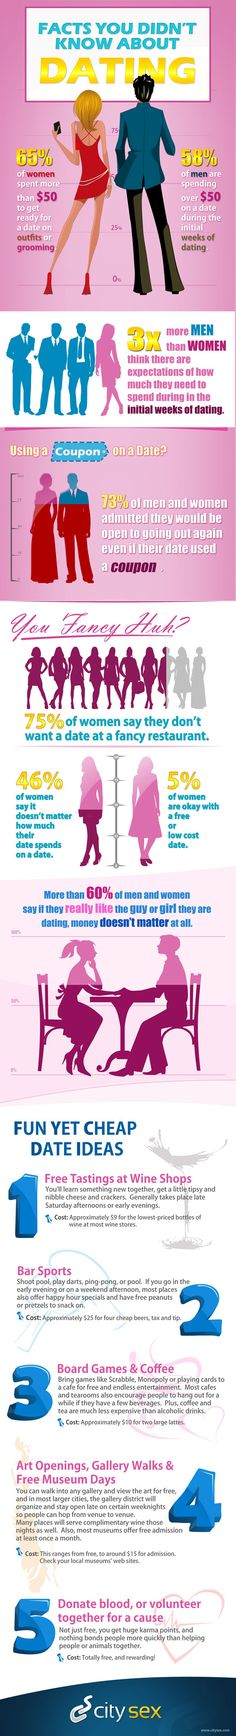 Online dating interesting facts